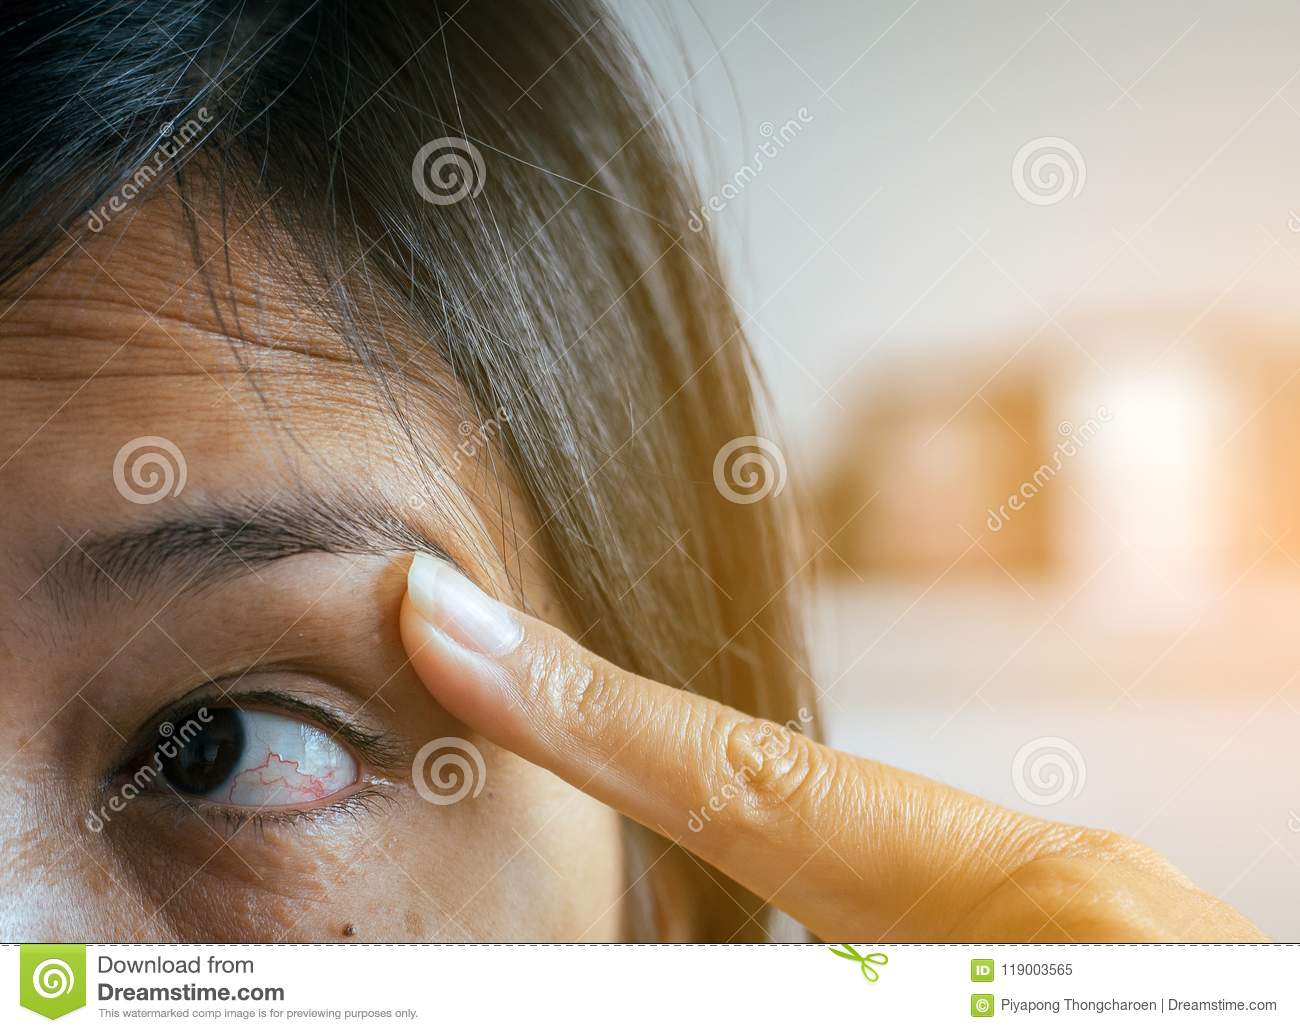 Veins On Red Eye Woman,Eyelid Layer,Causes The Use Of Eyes And Not